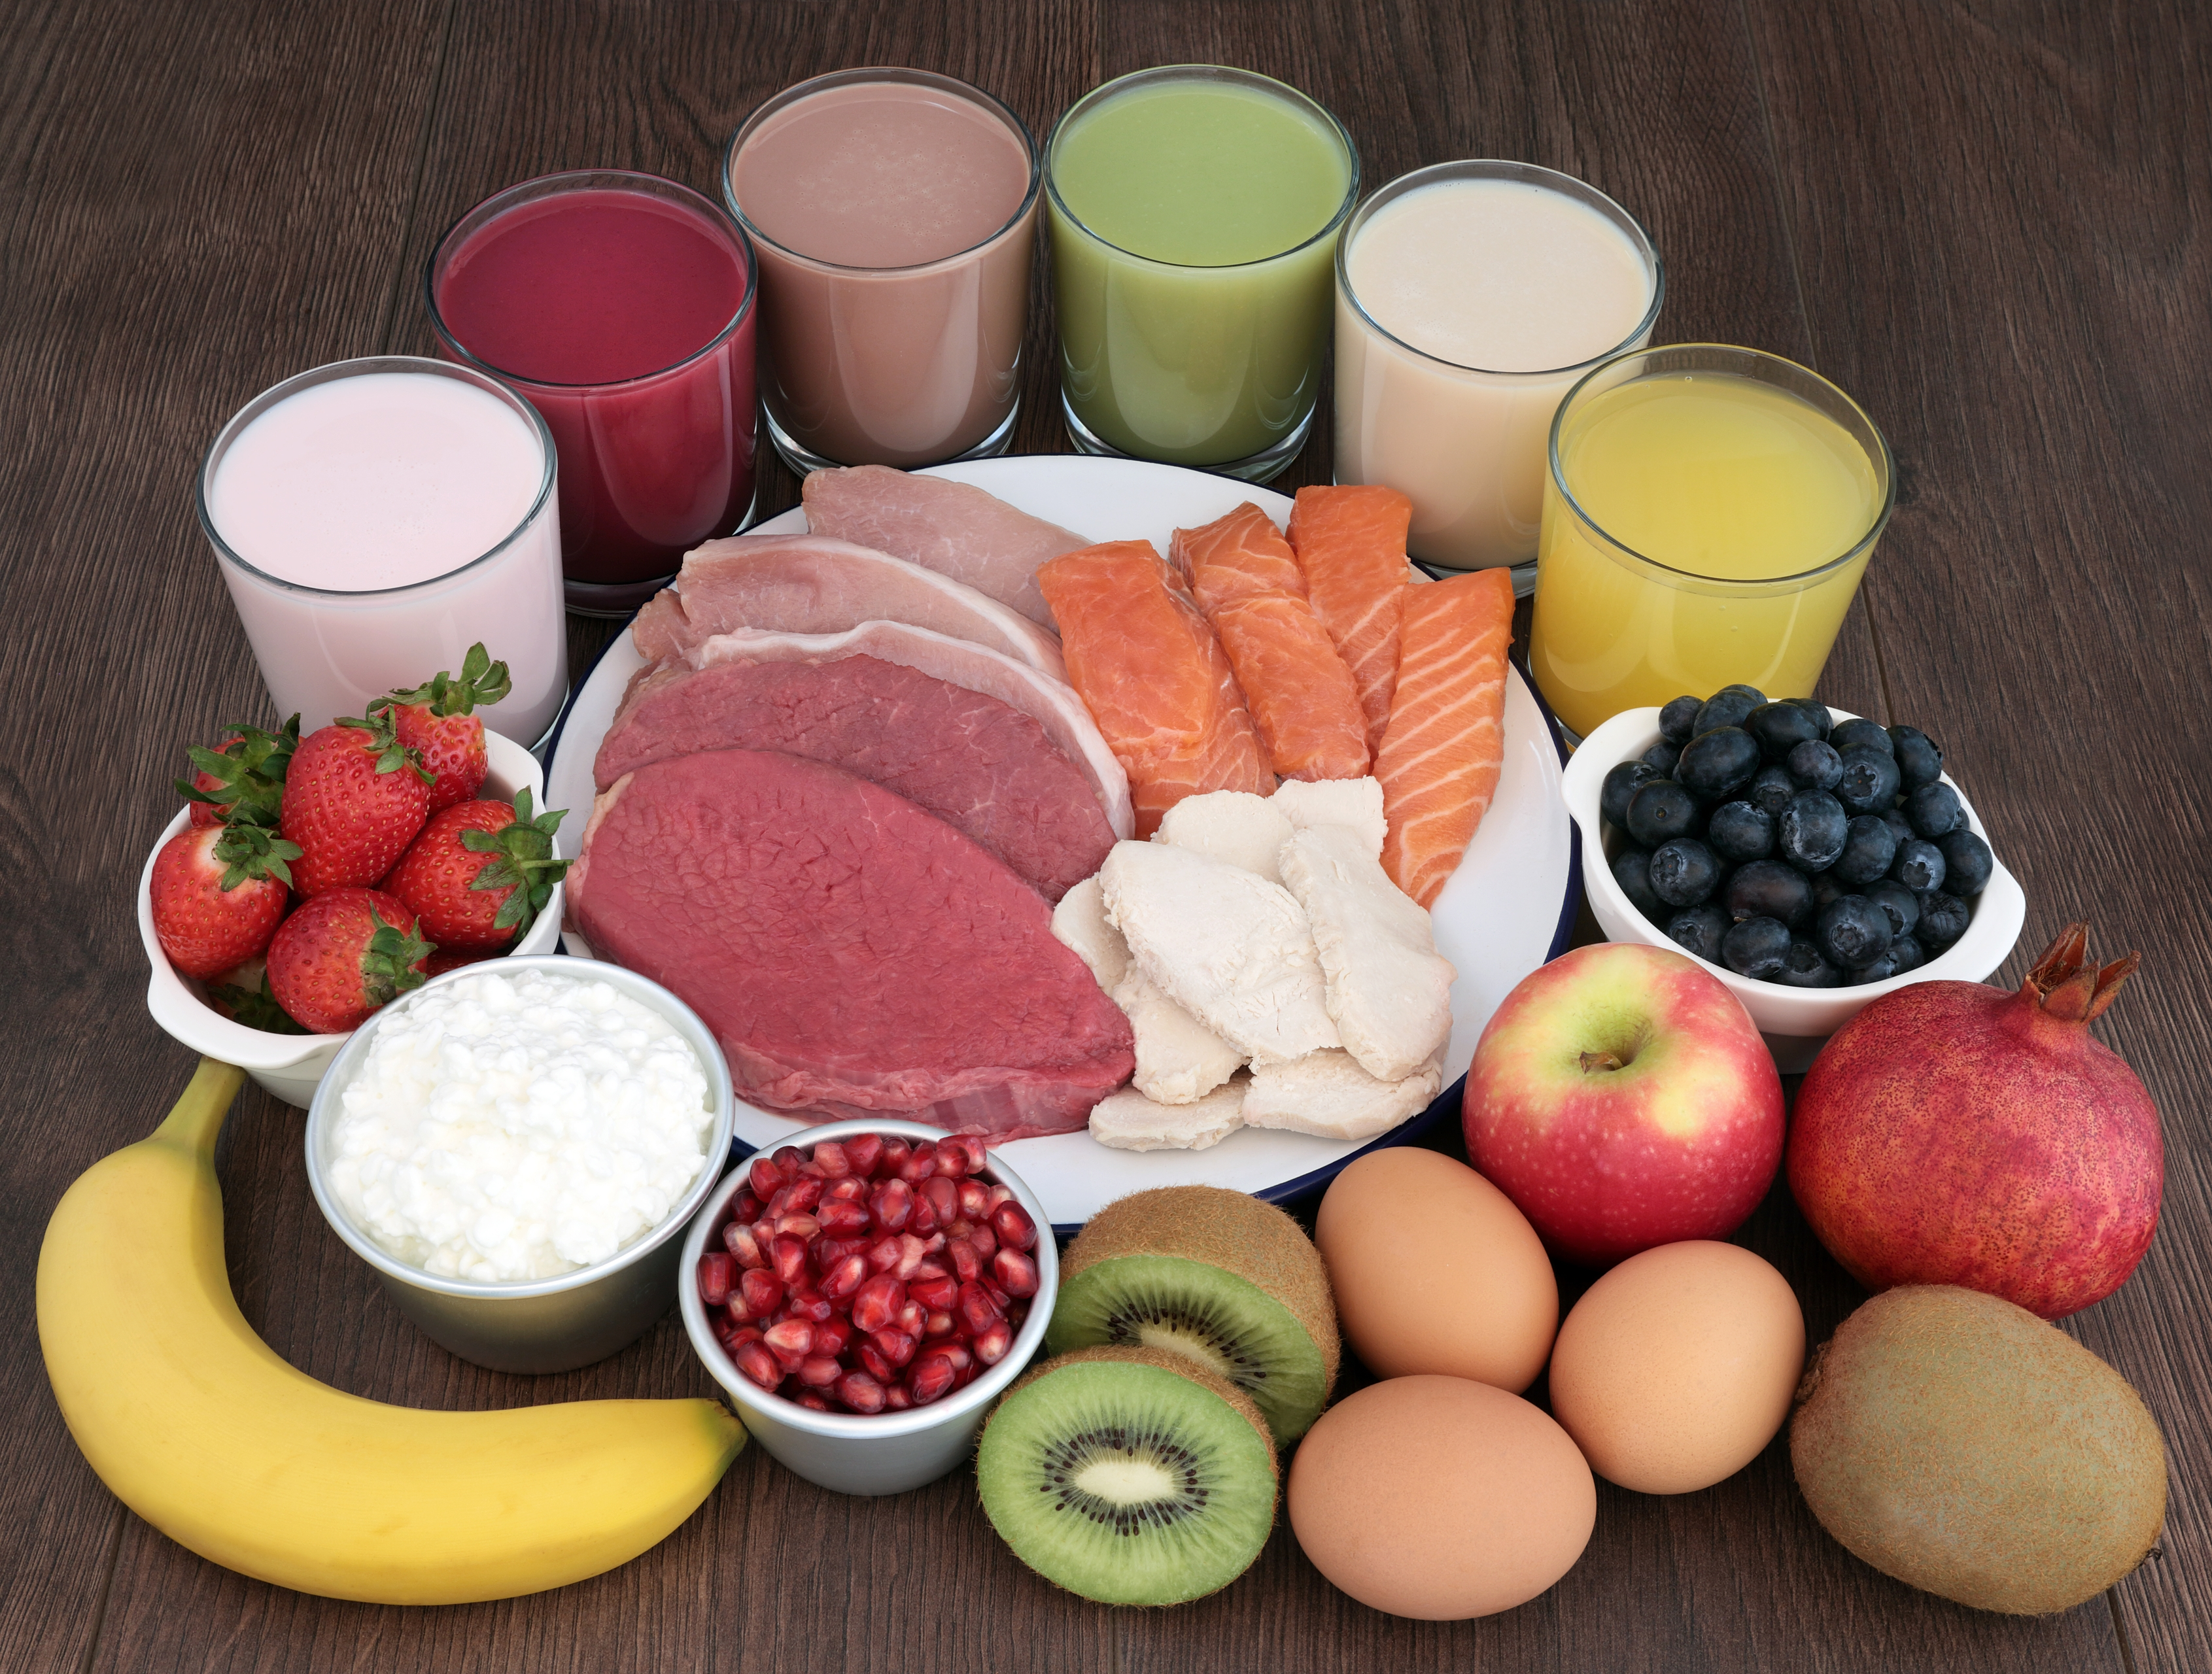 073572354-healthy-food-and-drinks-body-b